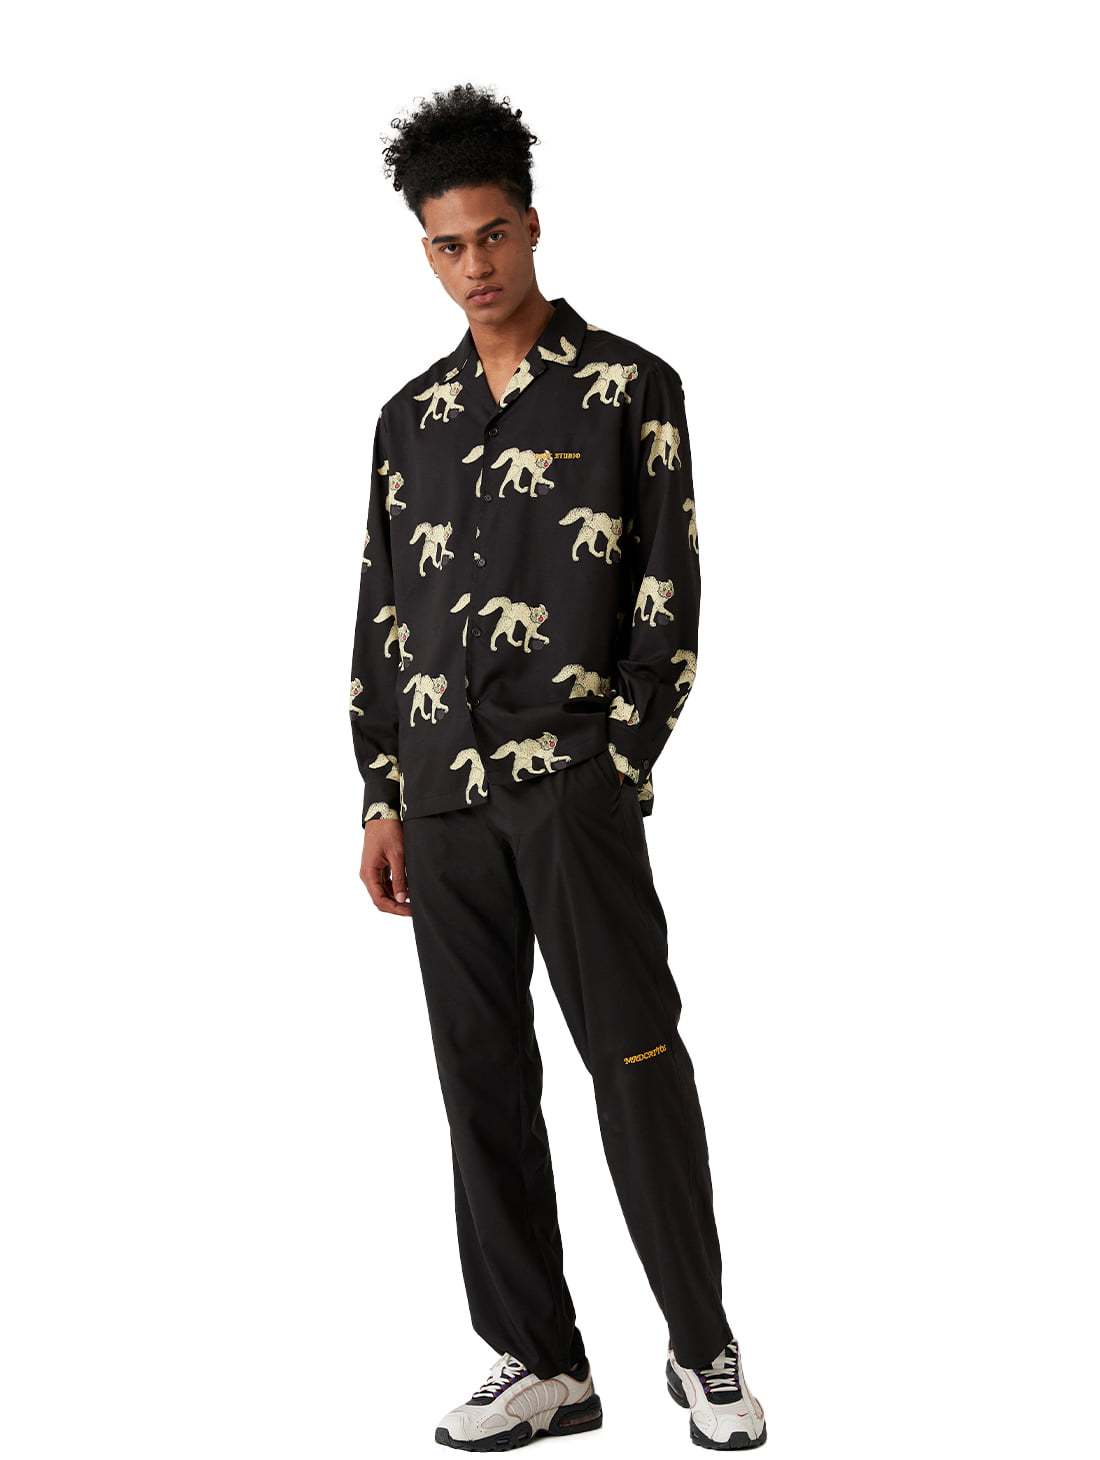 GOALSTUDIO [10% OFF] MC ALL OVER PATTERN SHIRTS & PANTS SET - BLACK